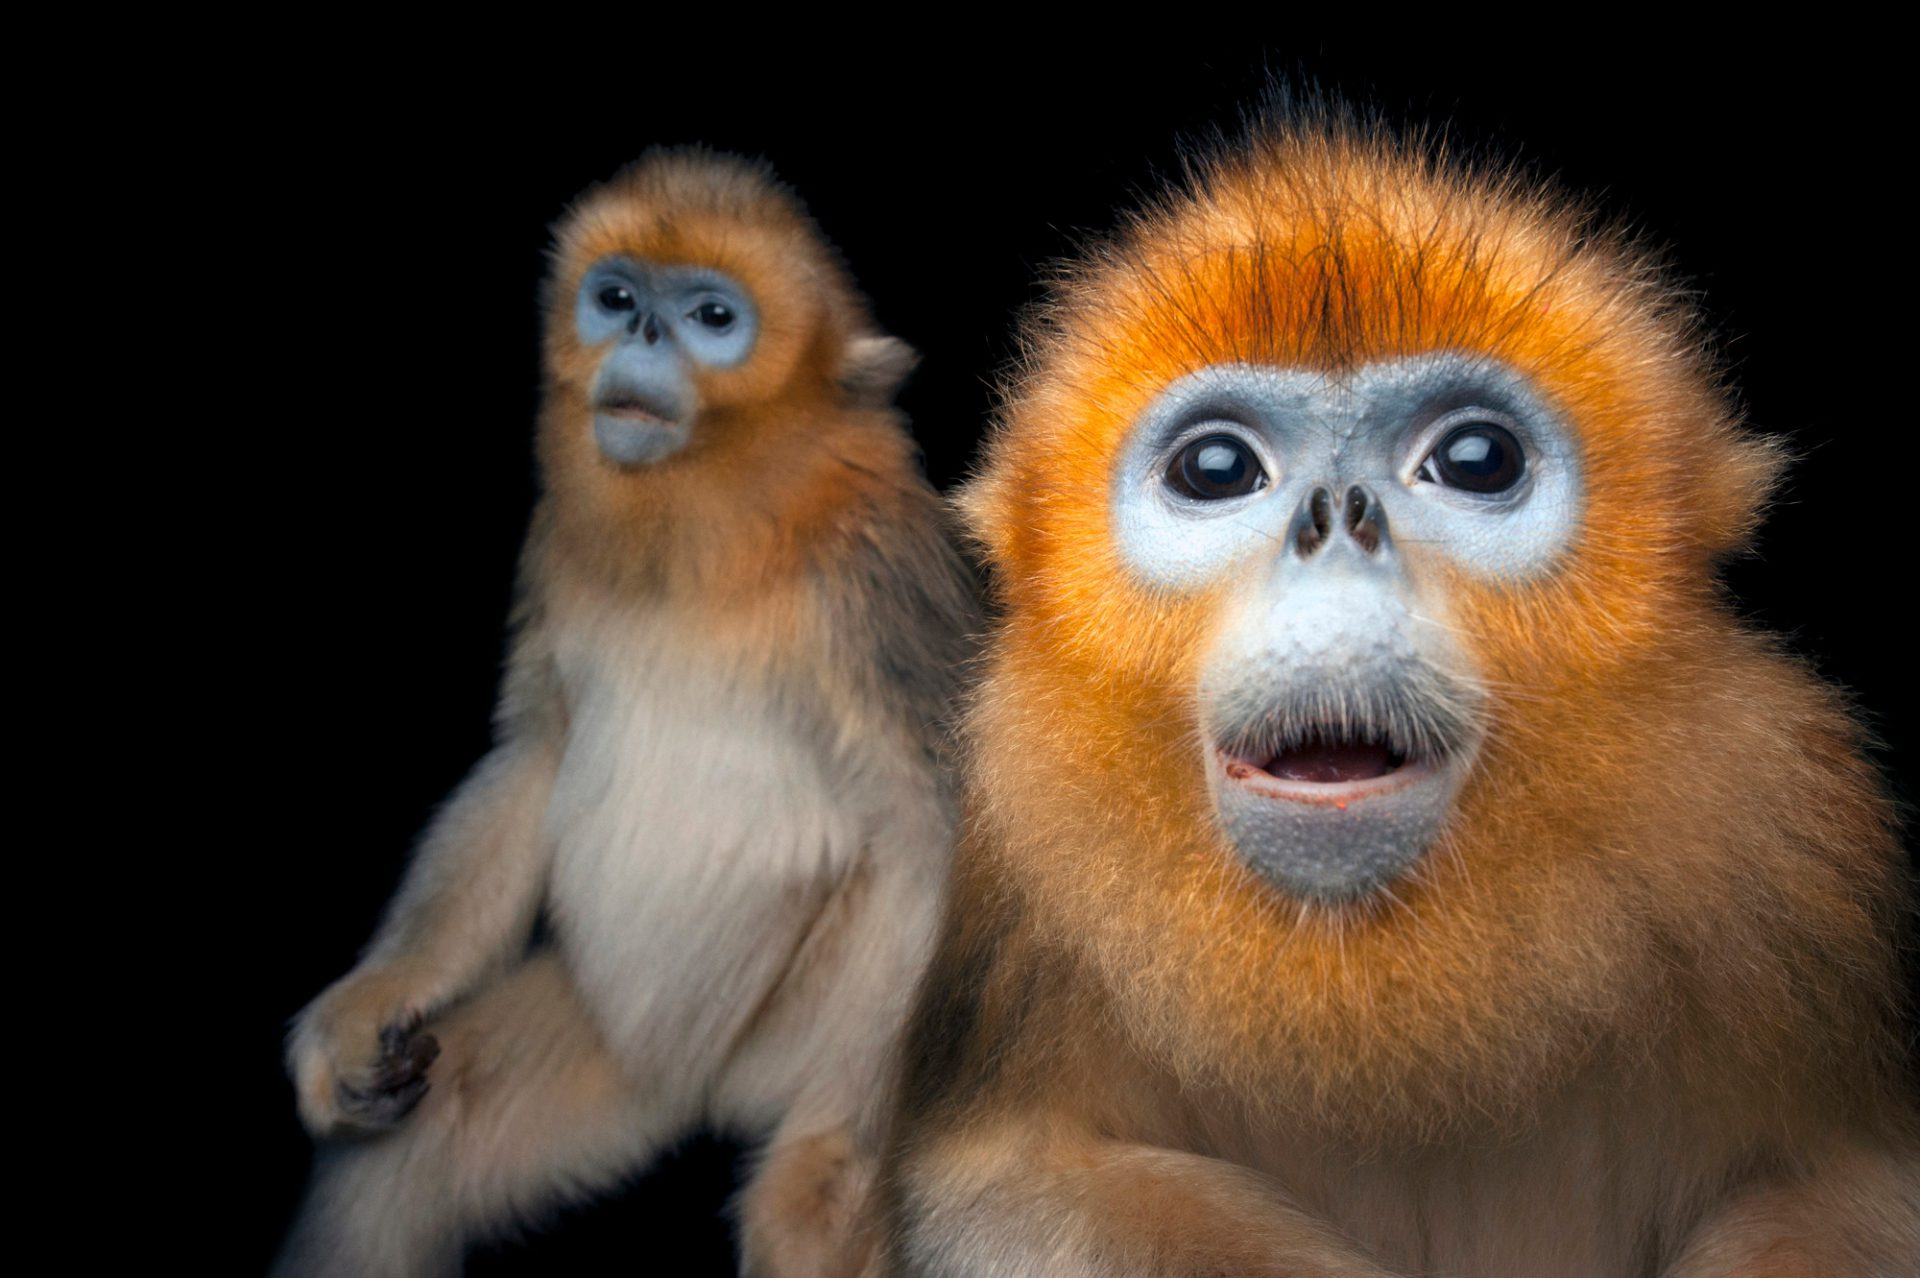 Picture of an endangered (IUCN) and federally endangered golden snub-nosed monkeys (Rhinopithecus roxellana) at Ocean Park.